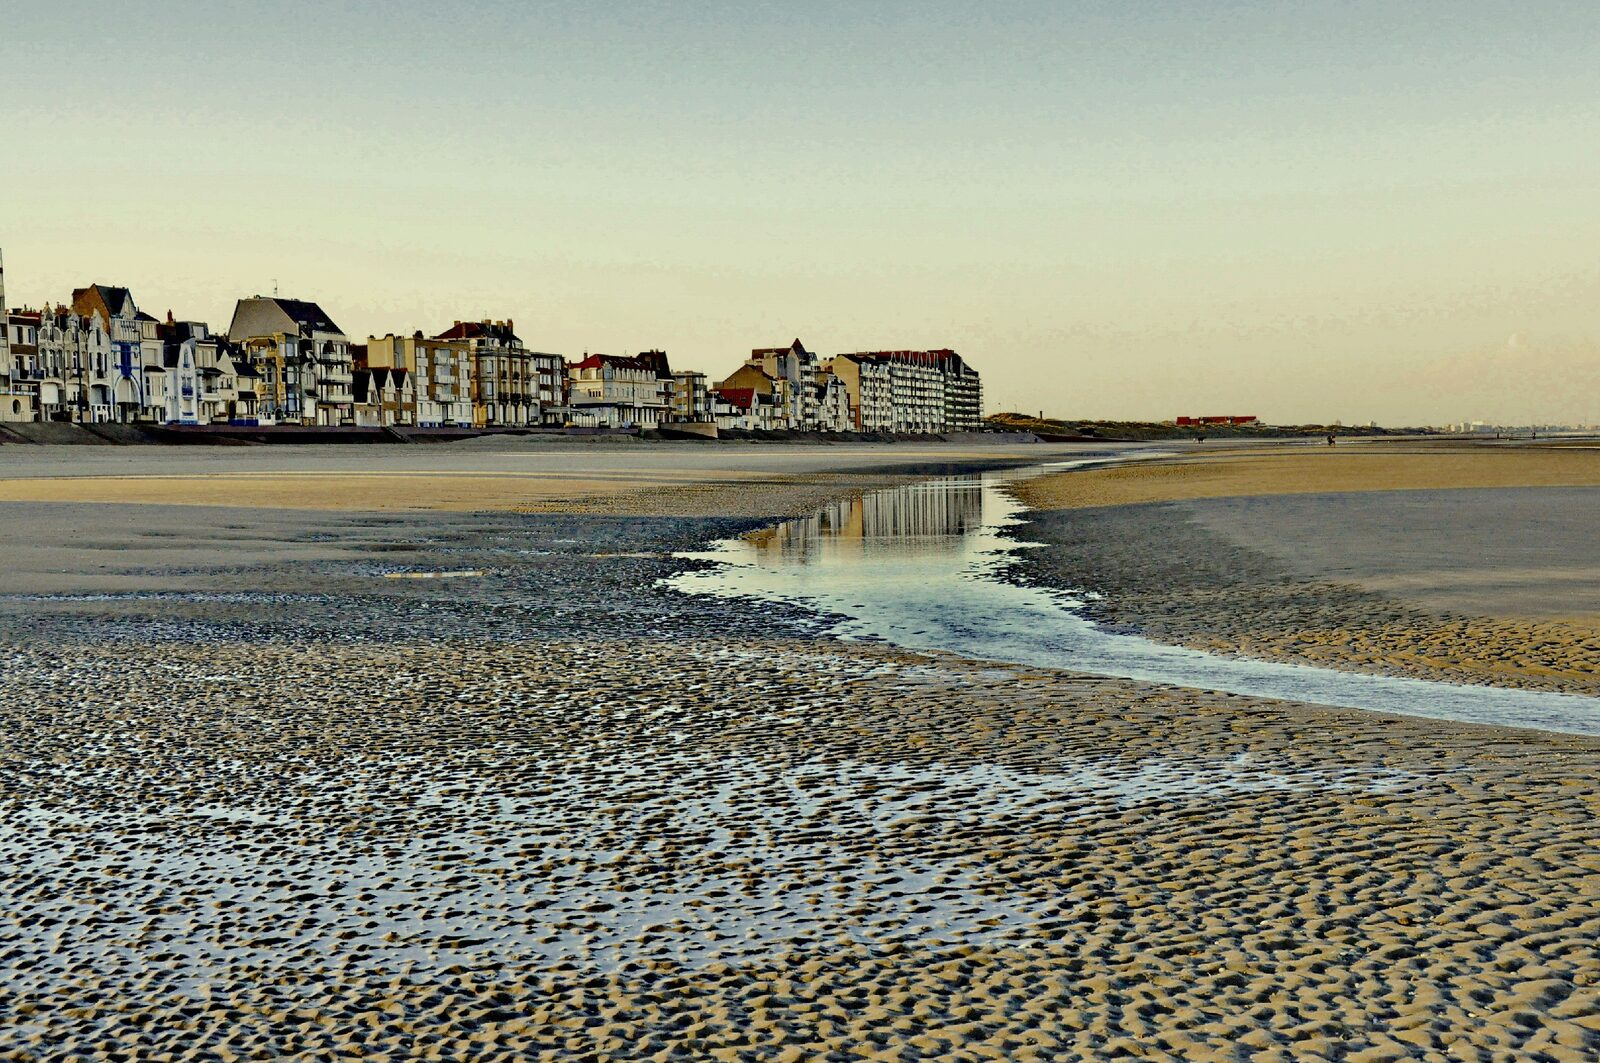 Bray Dunes, a charming seaside resort